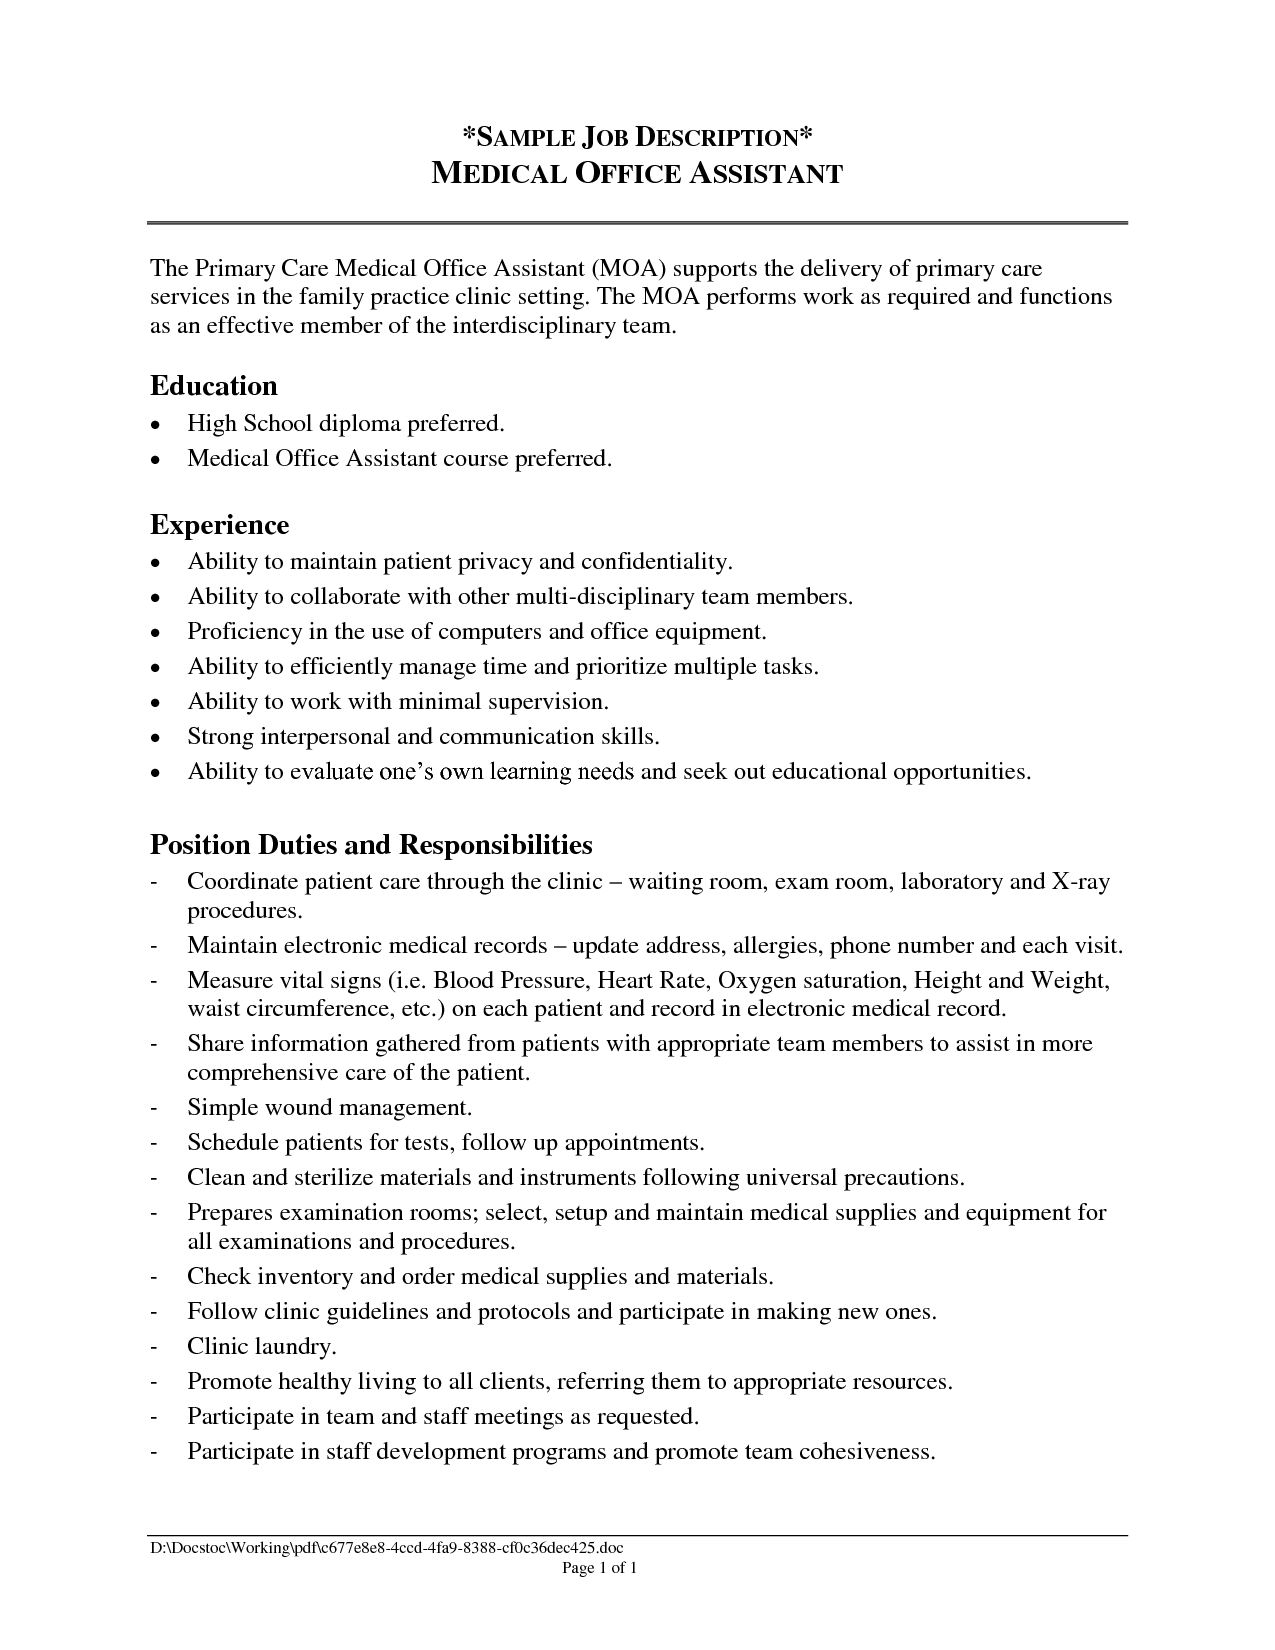 Job Description For Medical Administrative Assistant Forteforic